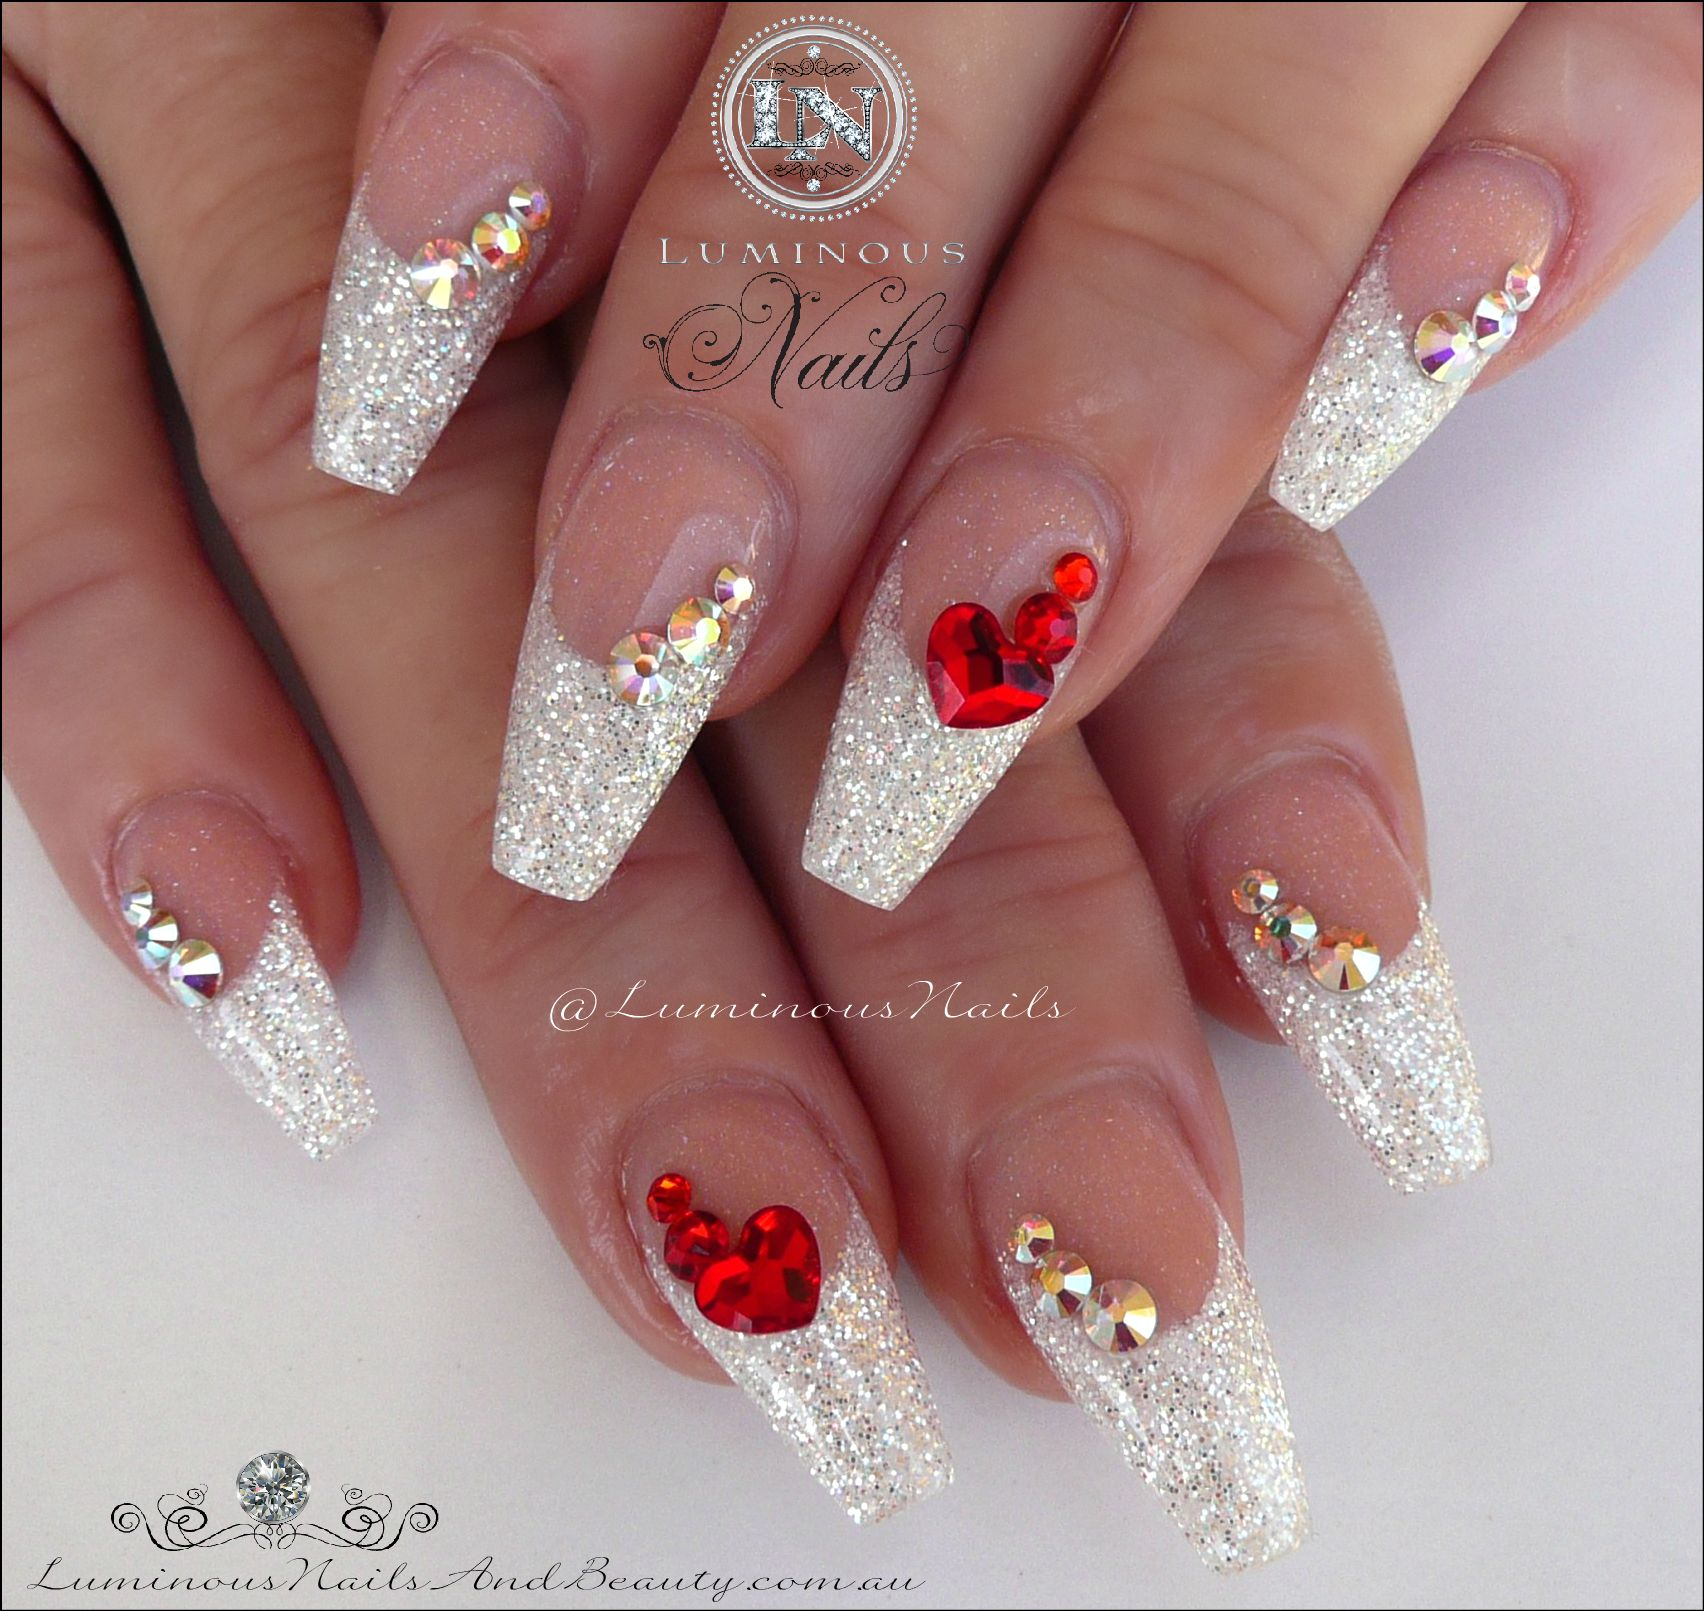 Christmas Designs For Acrylic Nails: White Christmas Acrylic Nails With A Touch Of Red